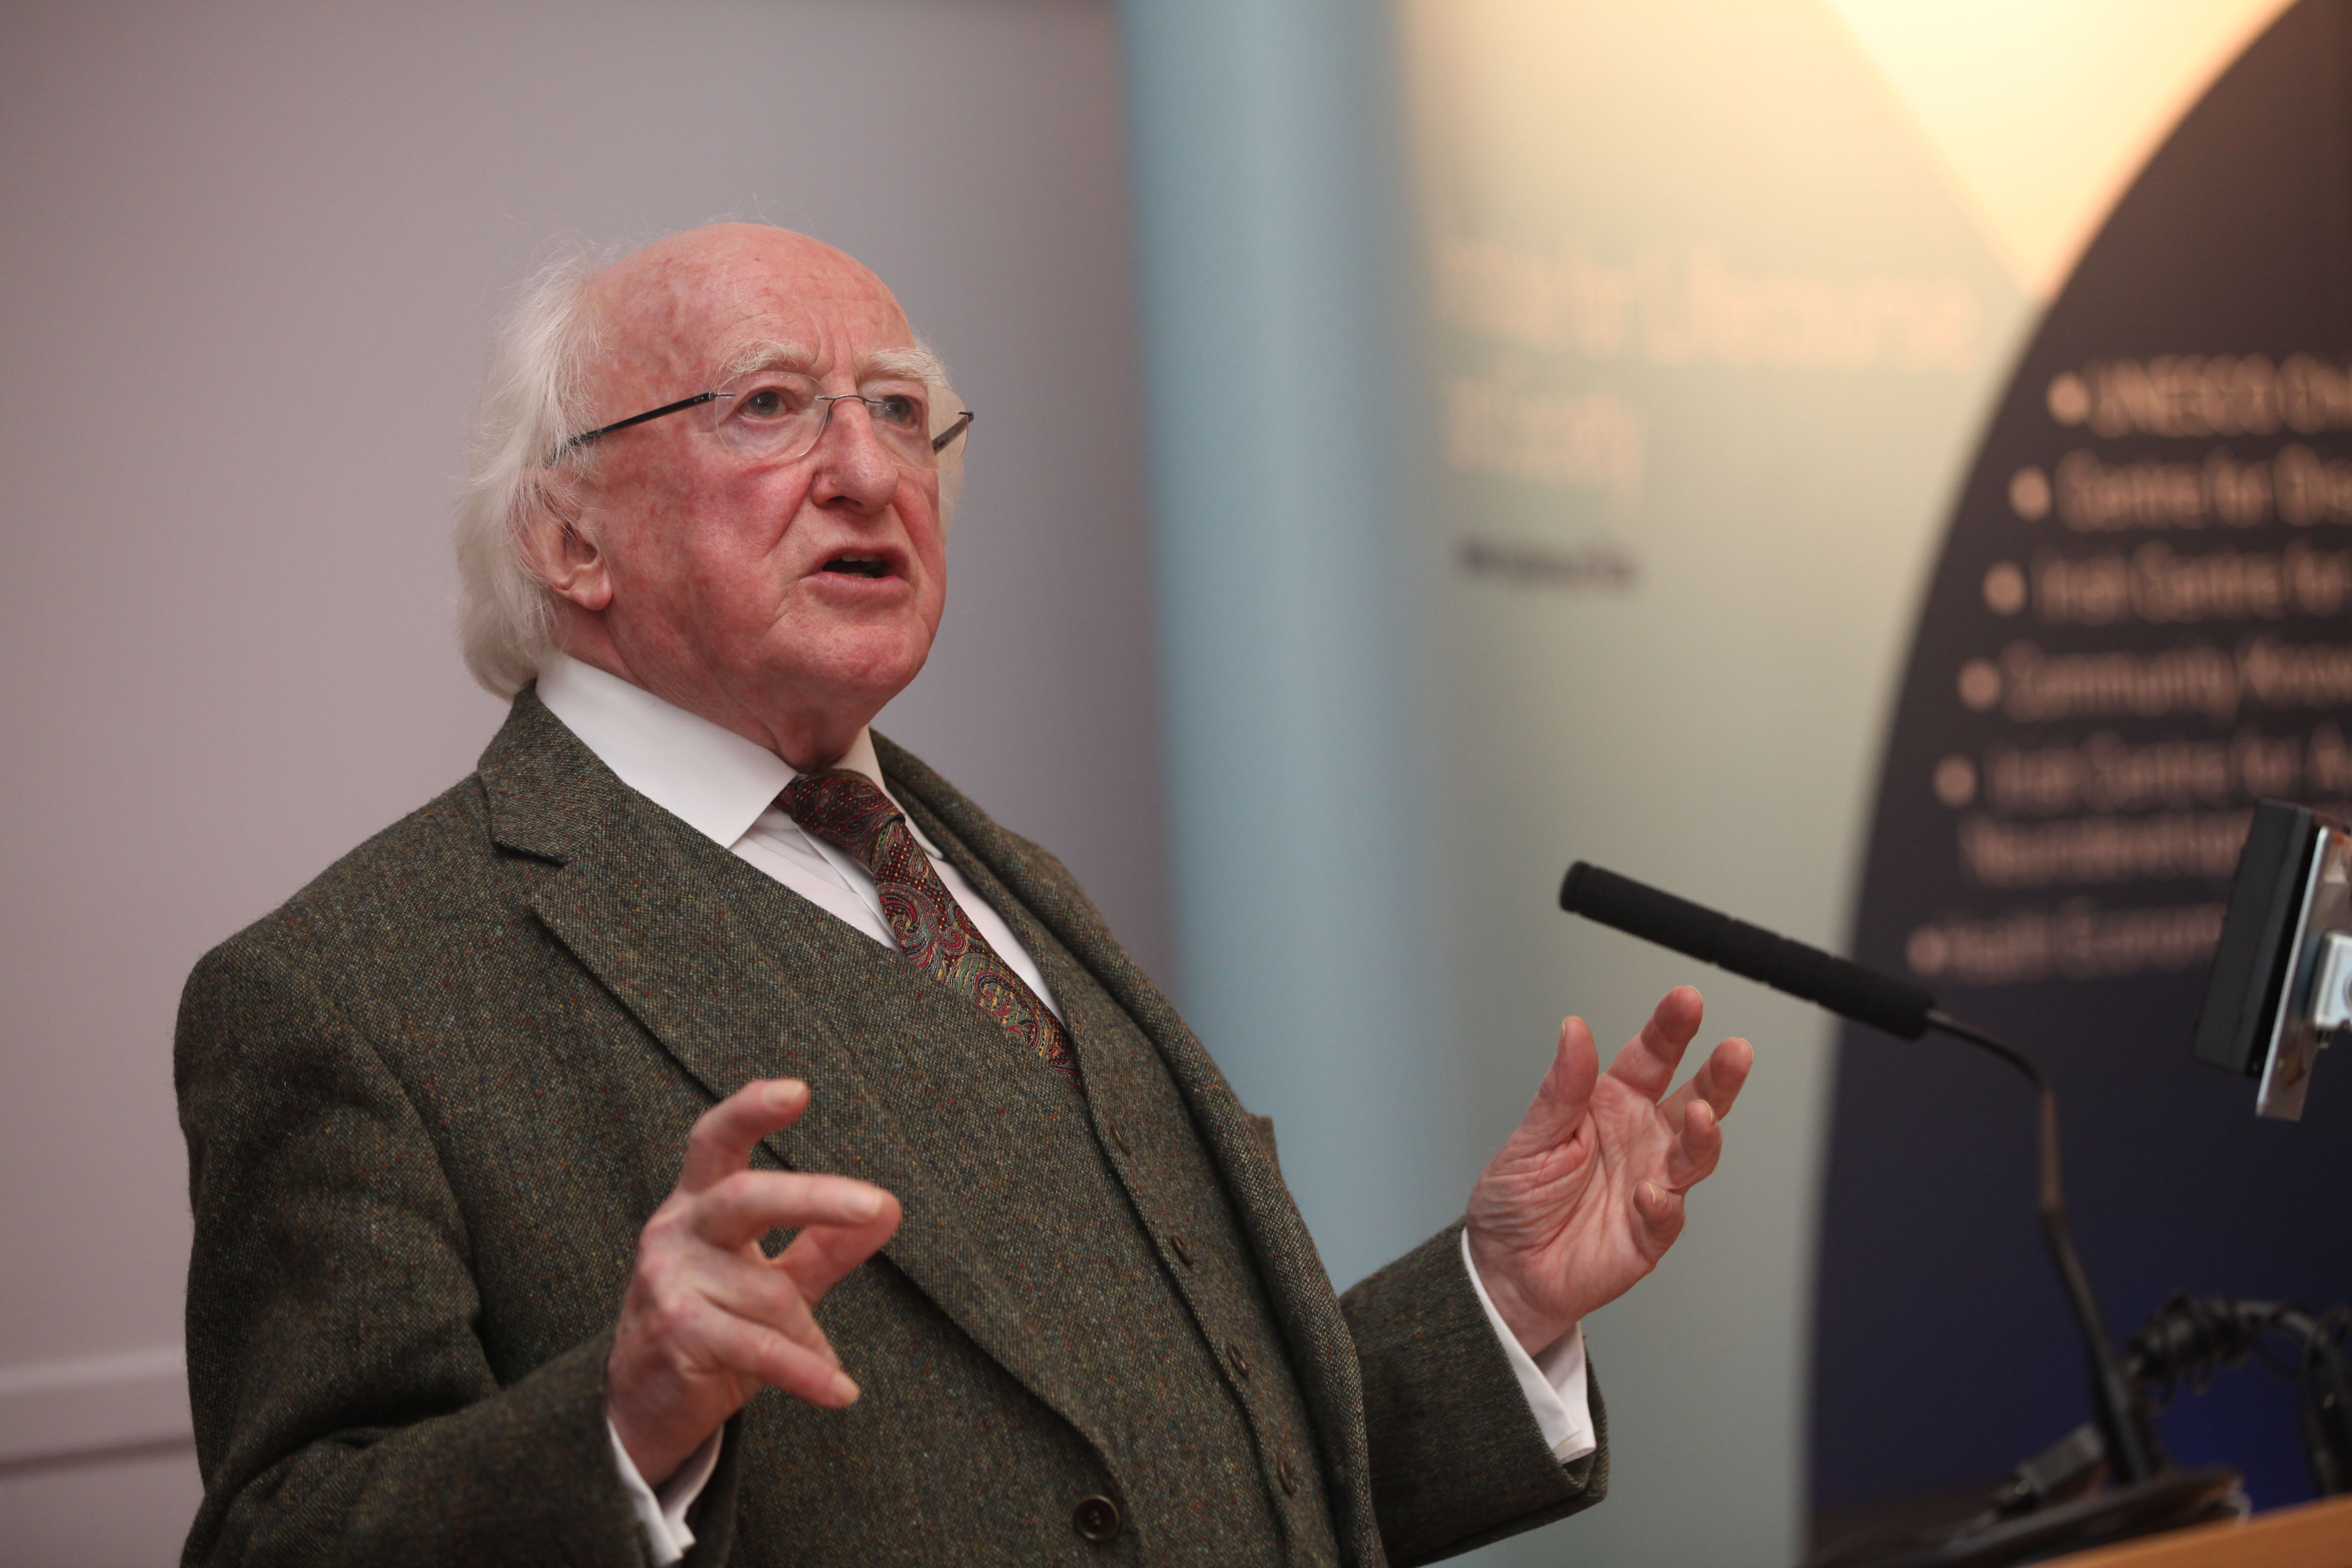 President of Ireland, Michael D. Higgins last night (Monday, 30 November) delivered a lecture at NUI Galway to mark the inauguration of the Institute for Lifecourse and Society (ILAS) Distinguished Lecture Series.